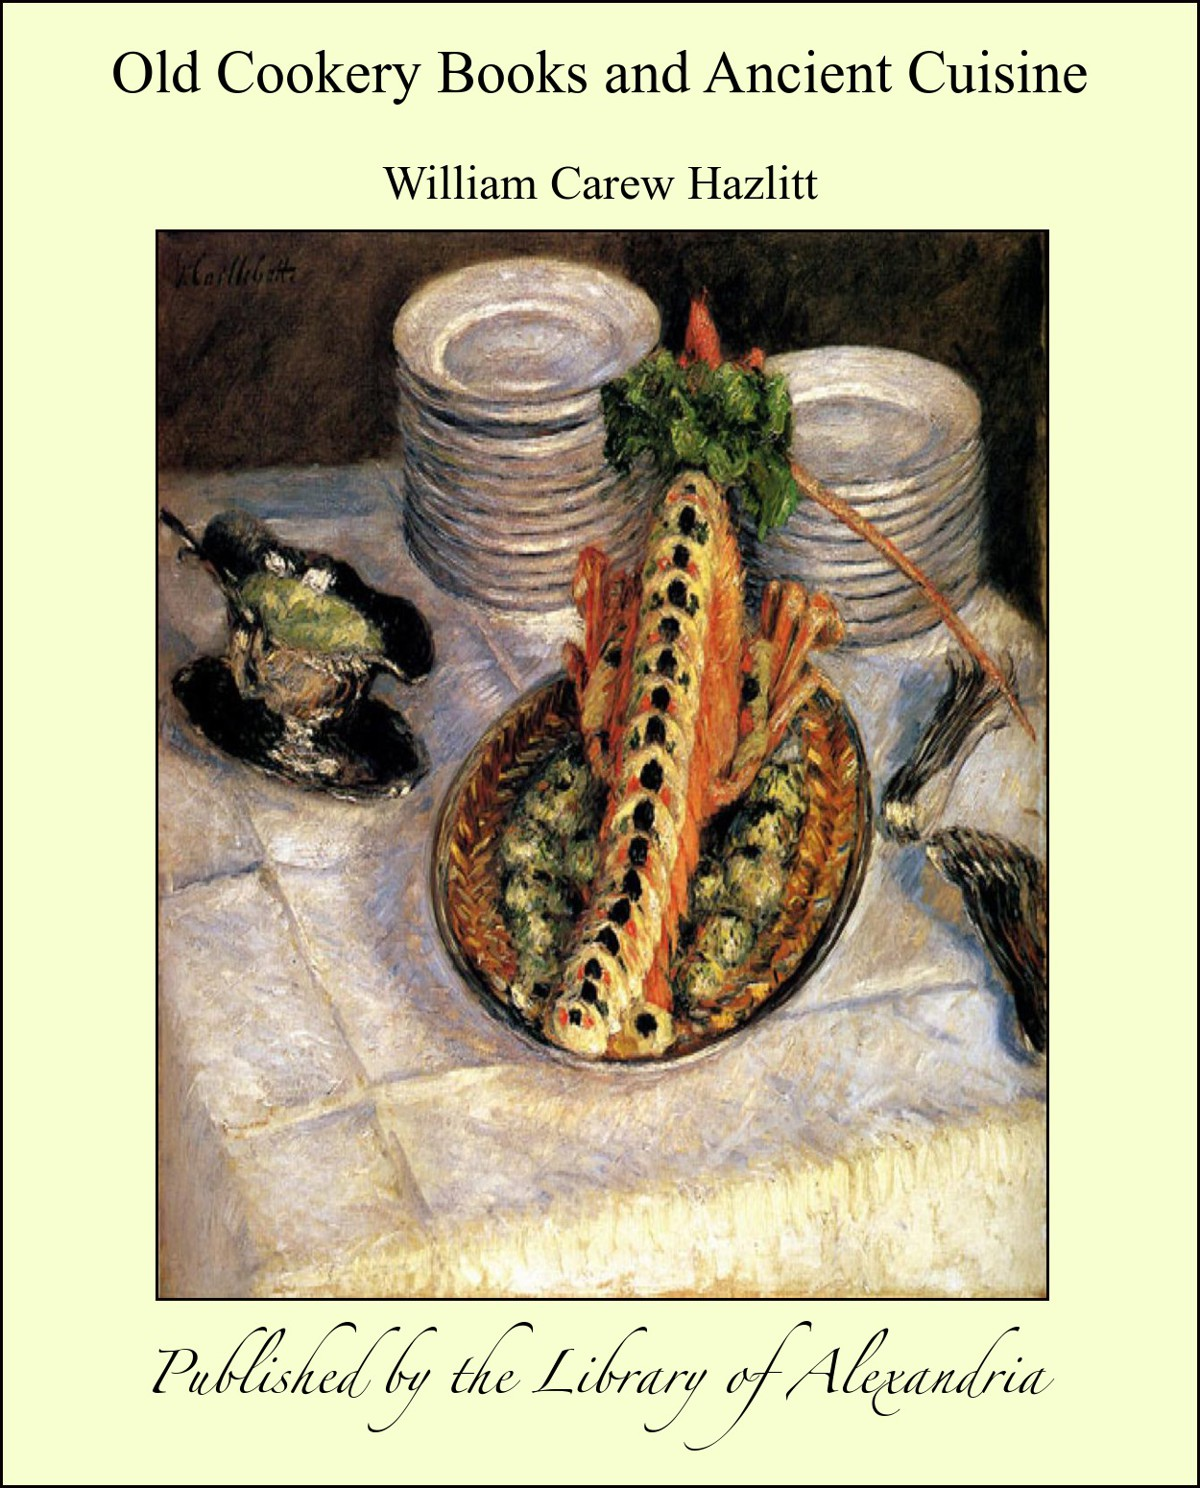 Old Cookery Books and Ancient Cuisine By: William Carew Hazlitt